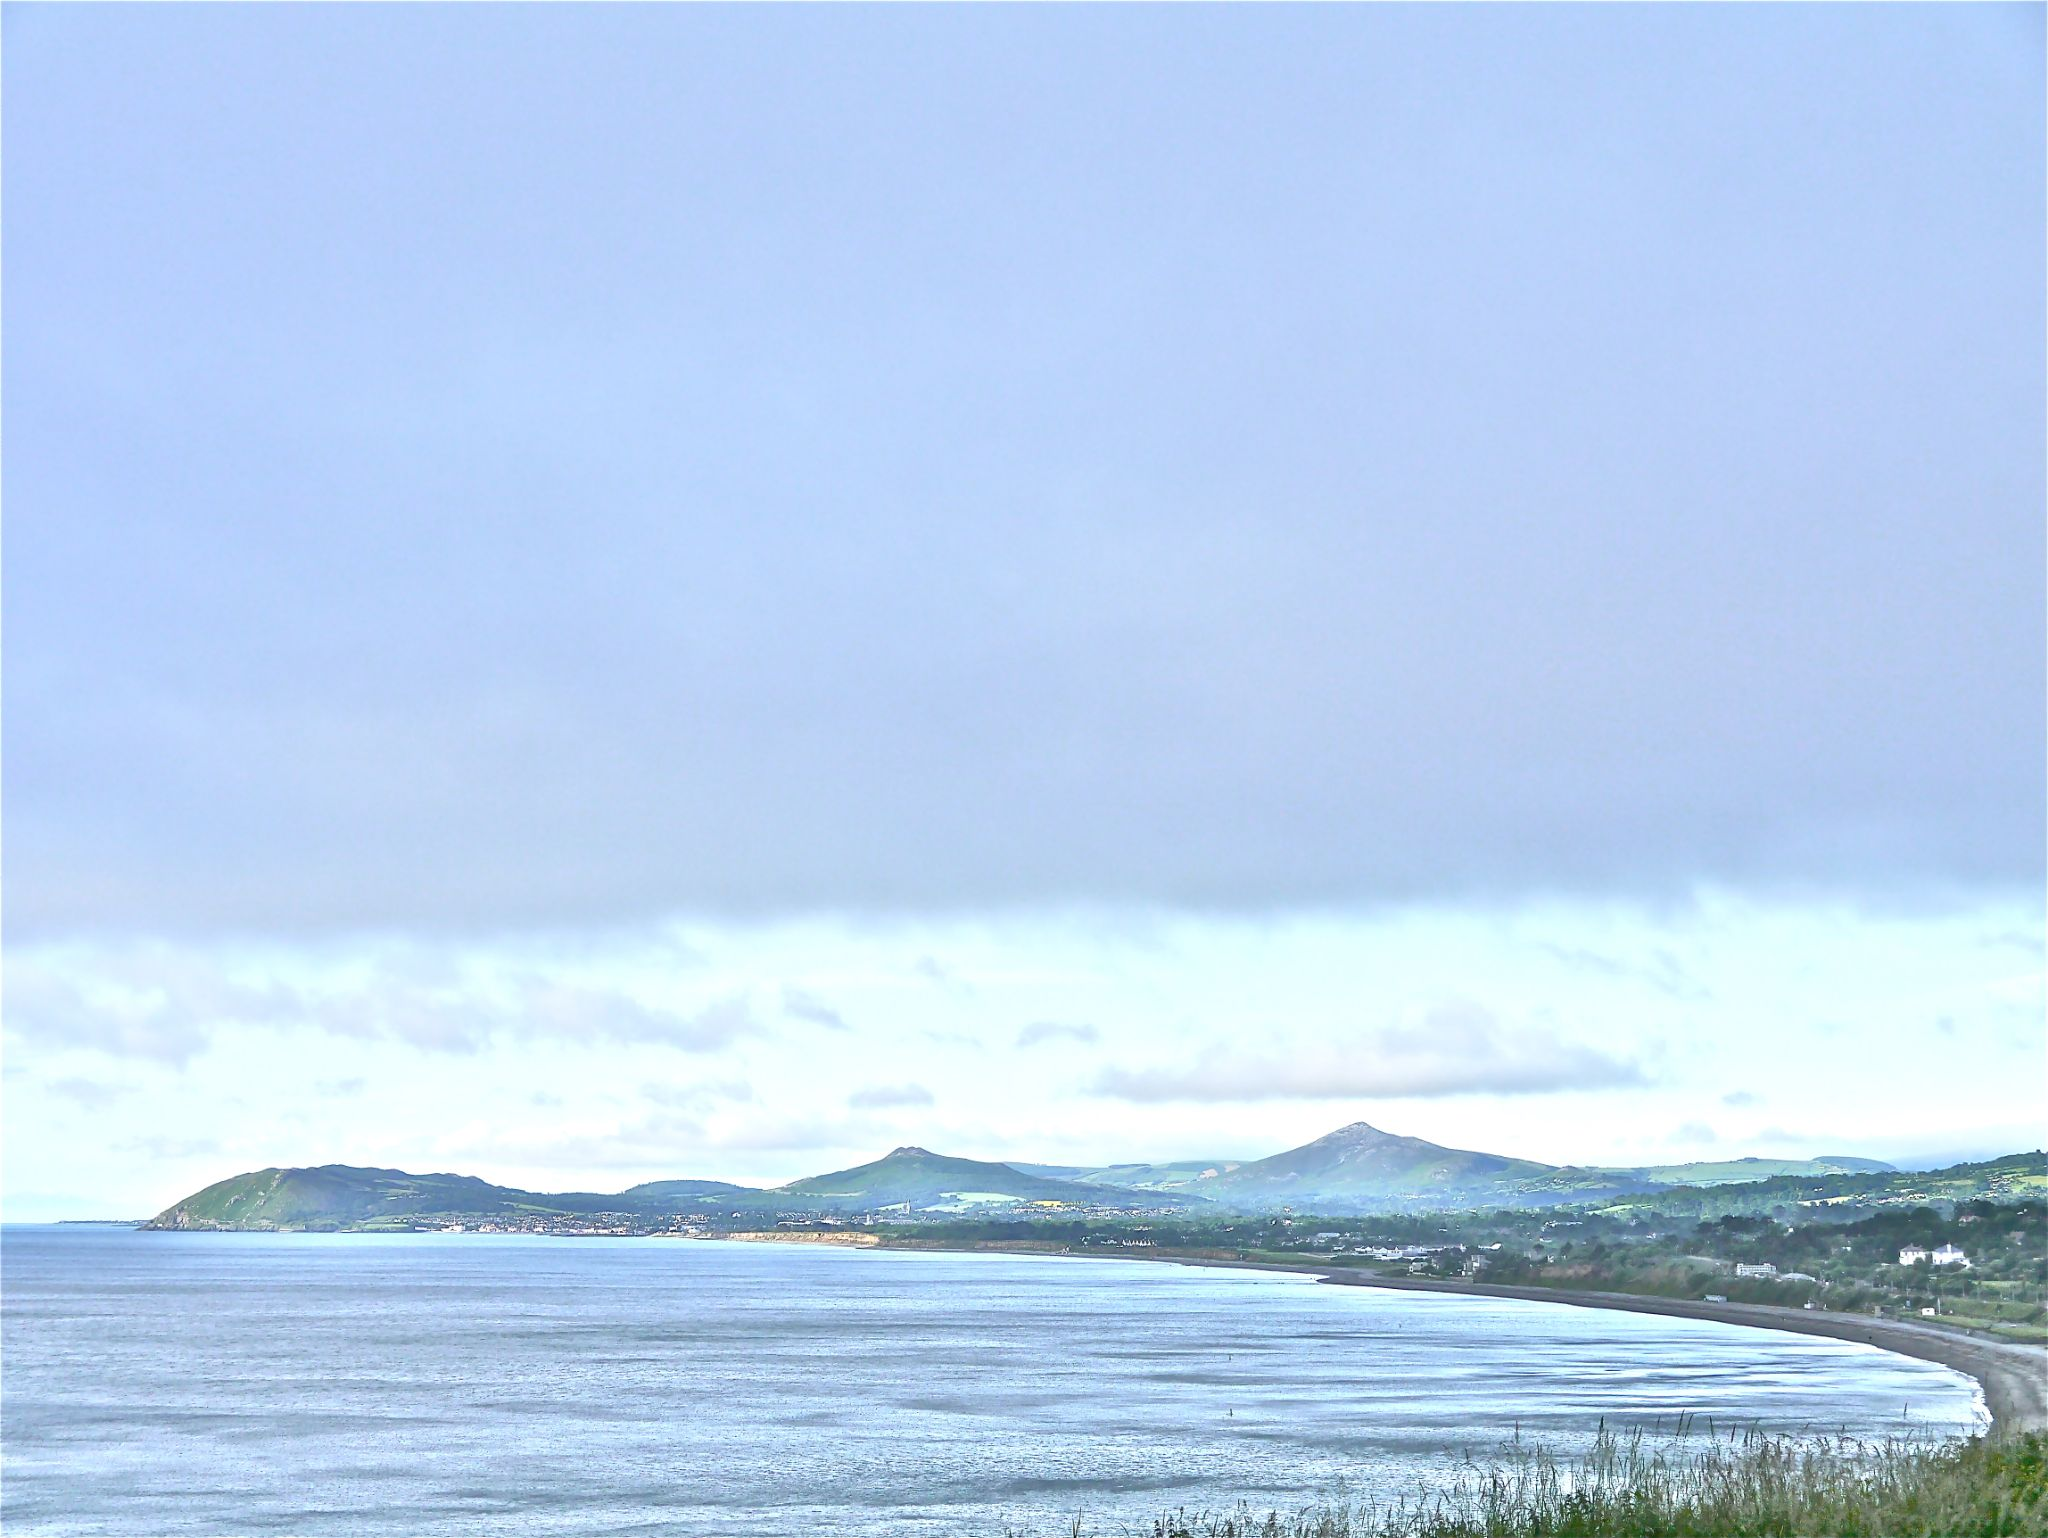 killiney bay  by Desmond O'connor photography